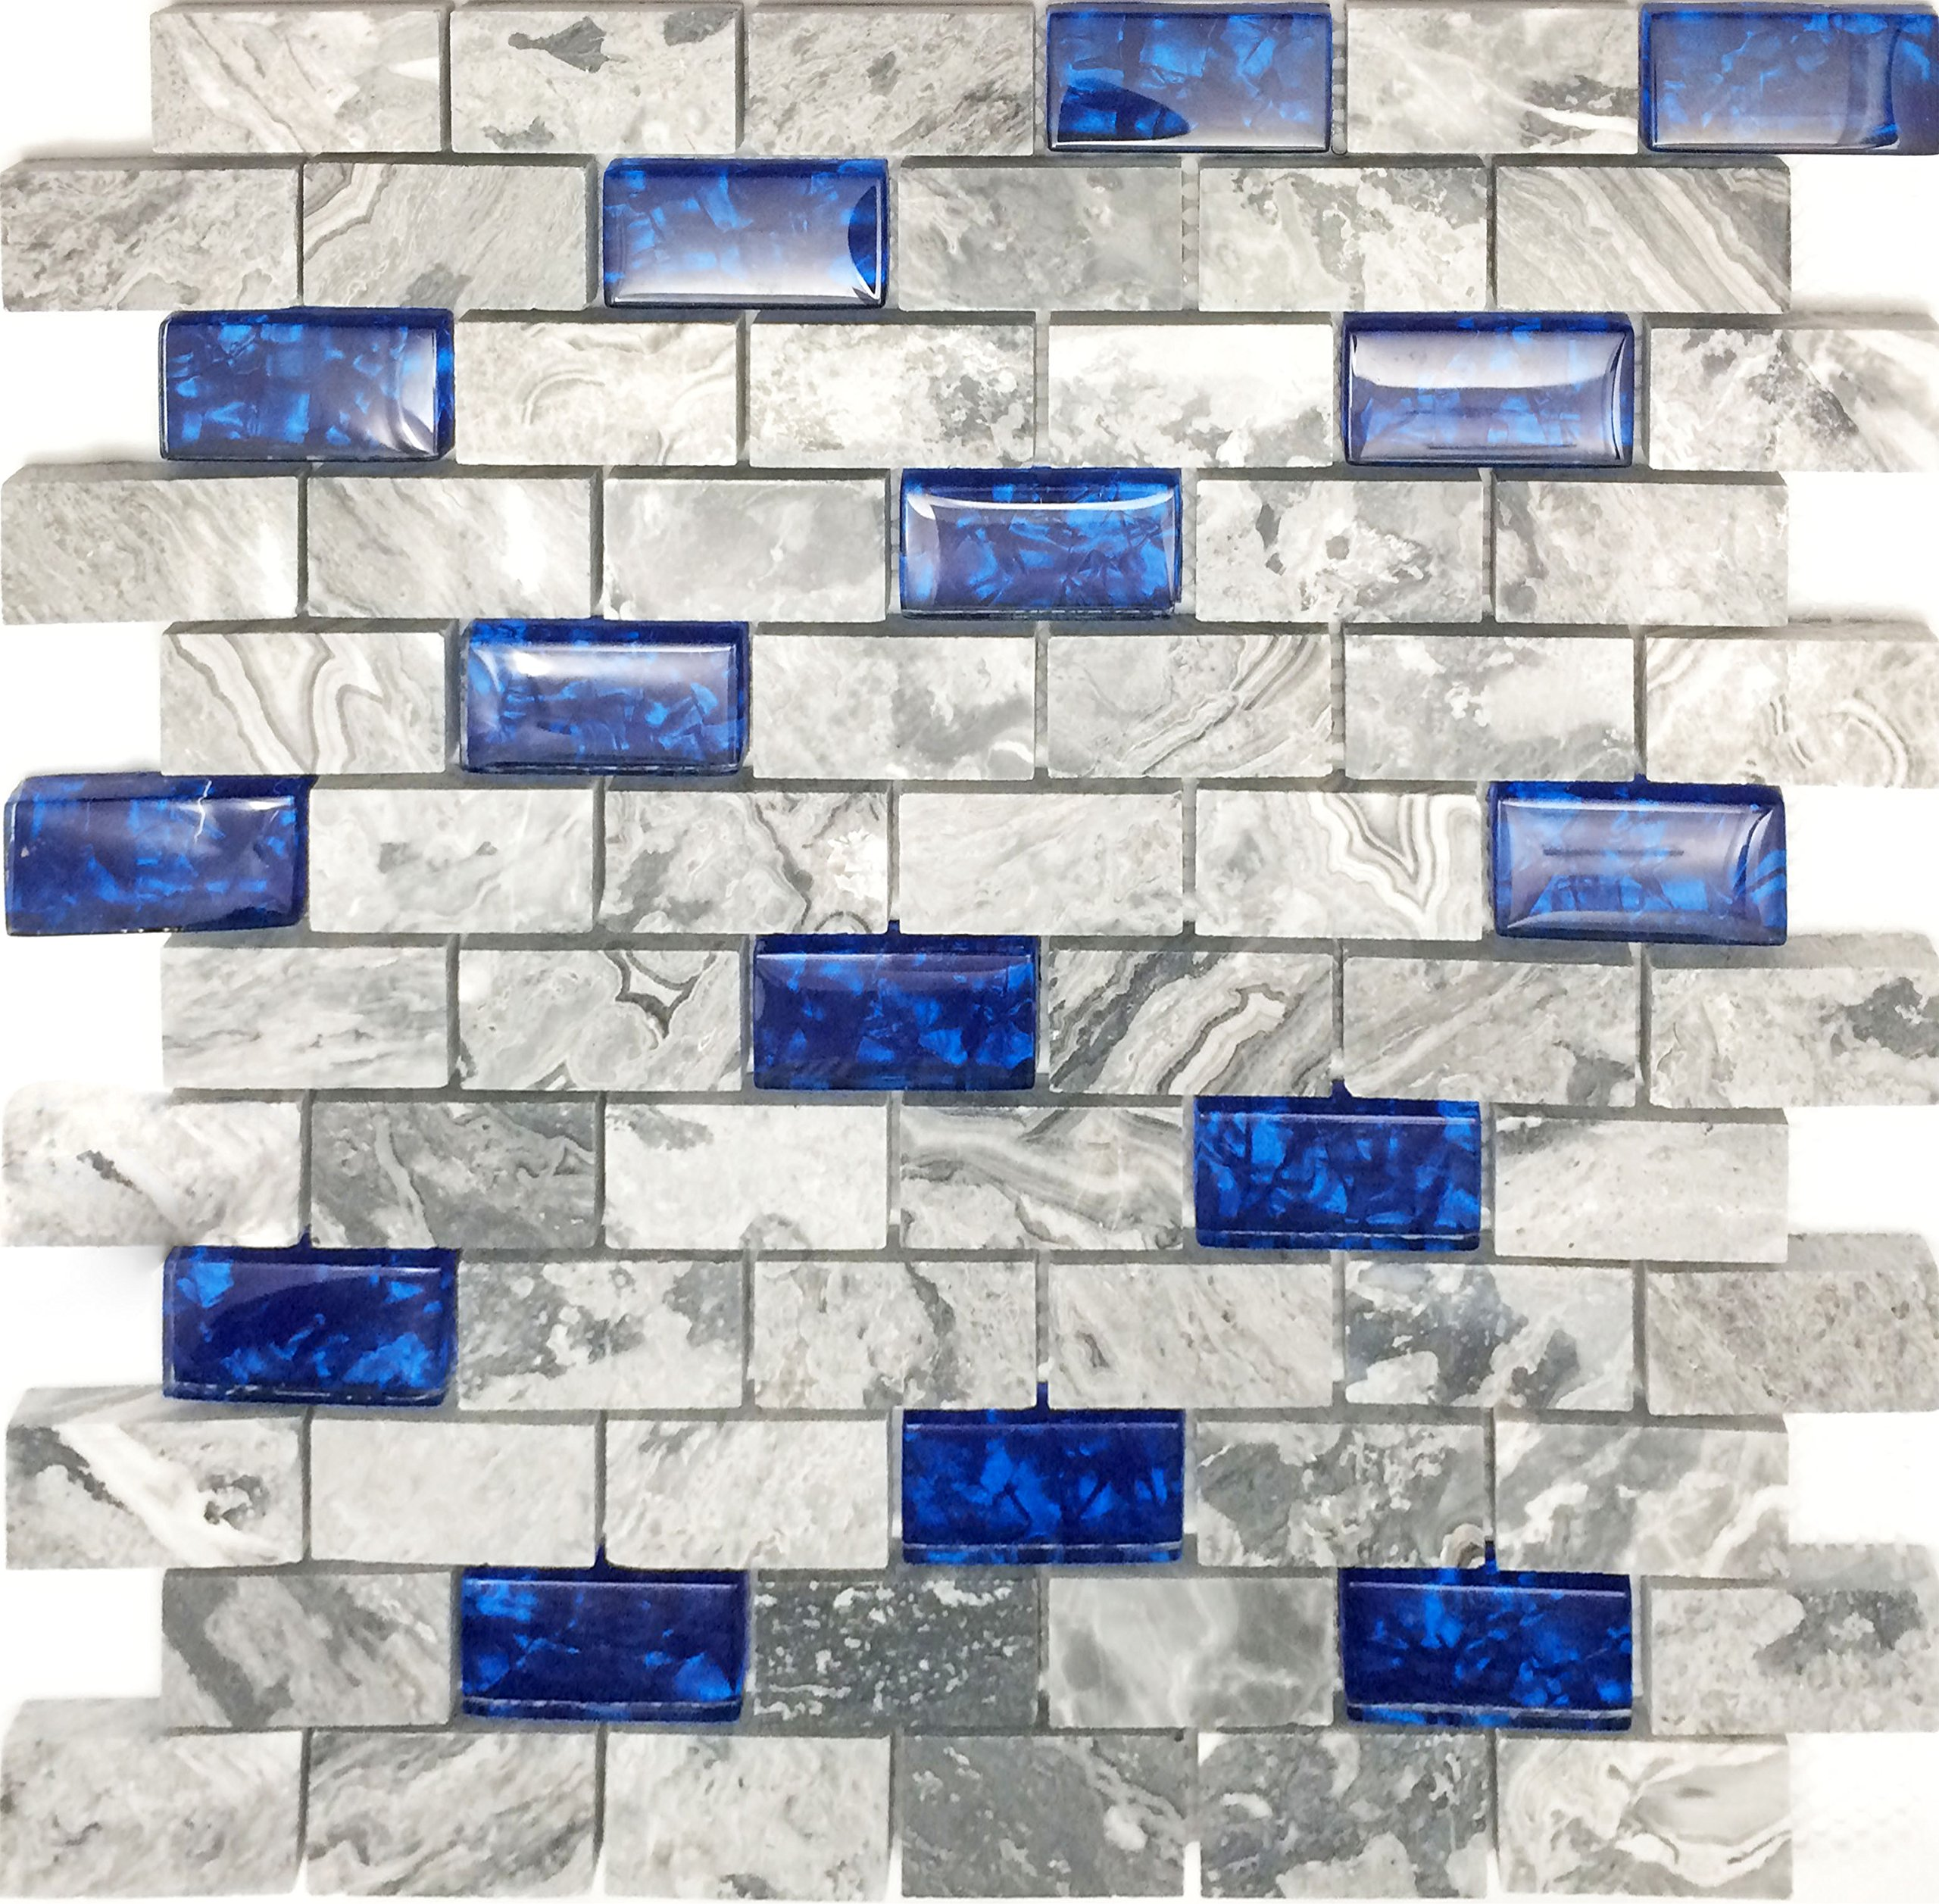 Hominter 11-Sheets Navy Blue Glass Mosaic Tile Rectangle, Gray Natural Marble 1'' x 2'' Subway Mini Brick, Wall and Floor Tiles in Bathroom and Kitchen Backsplash NB03